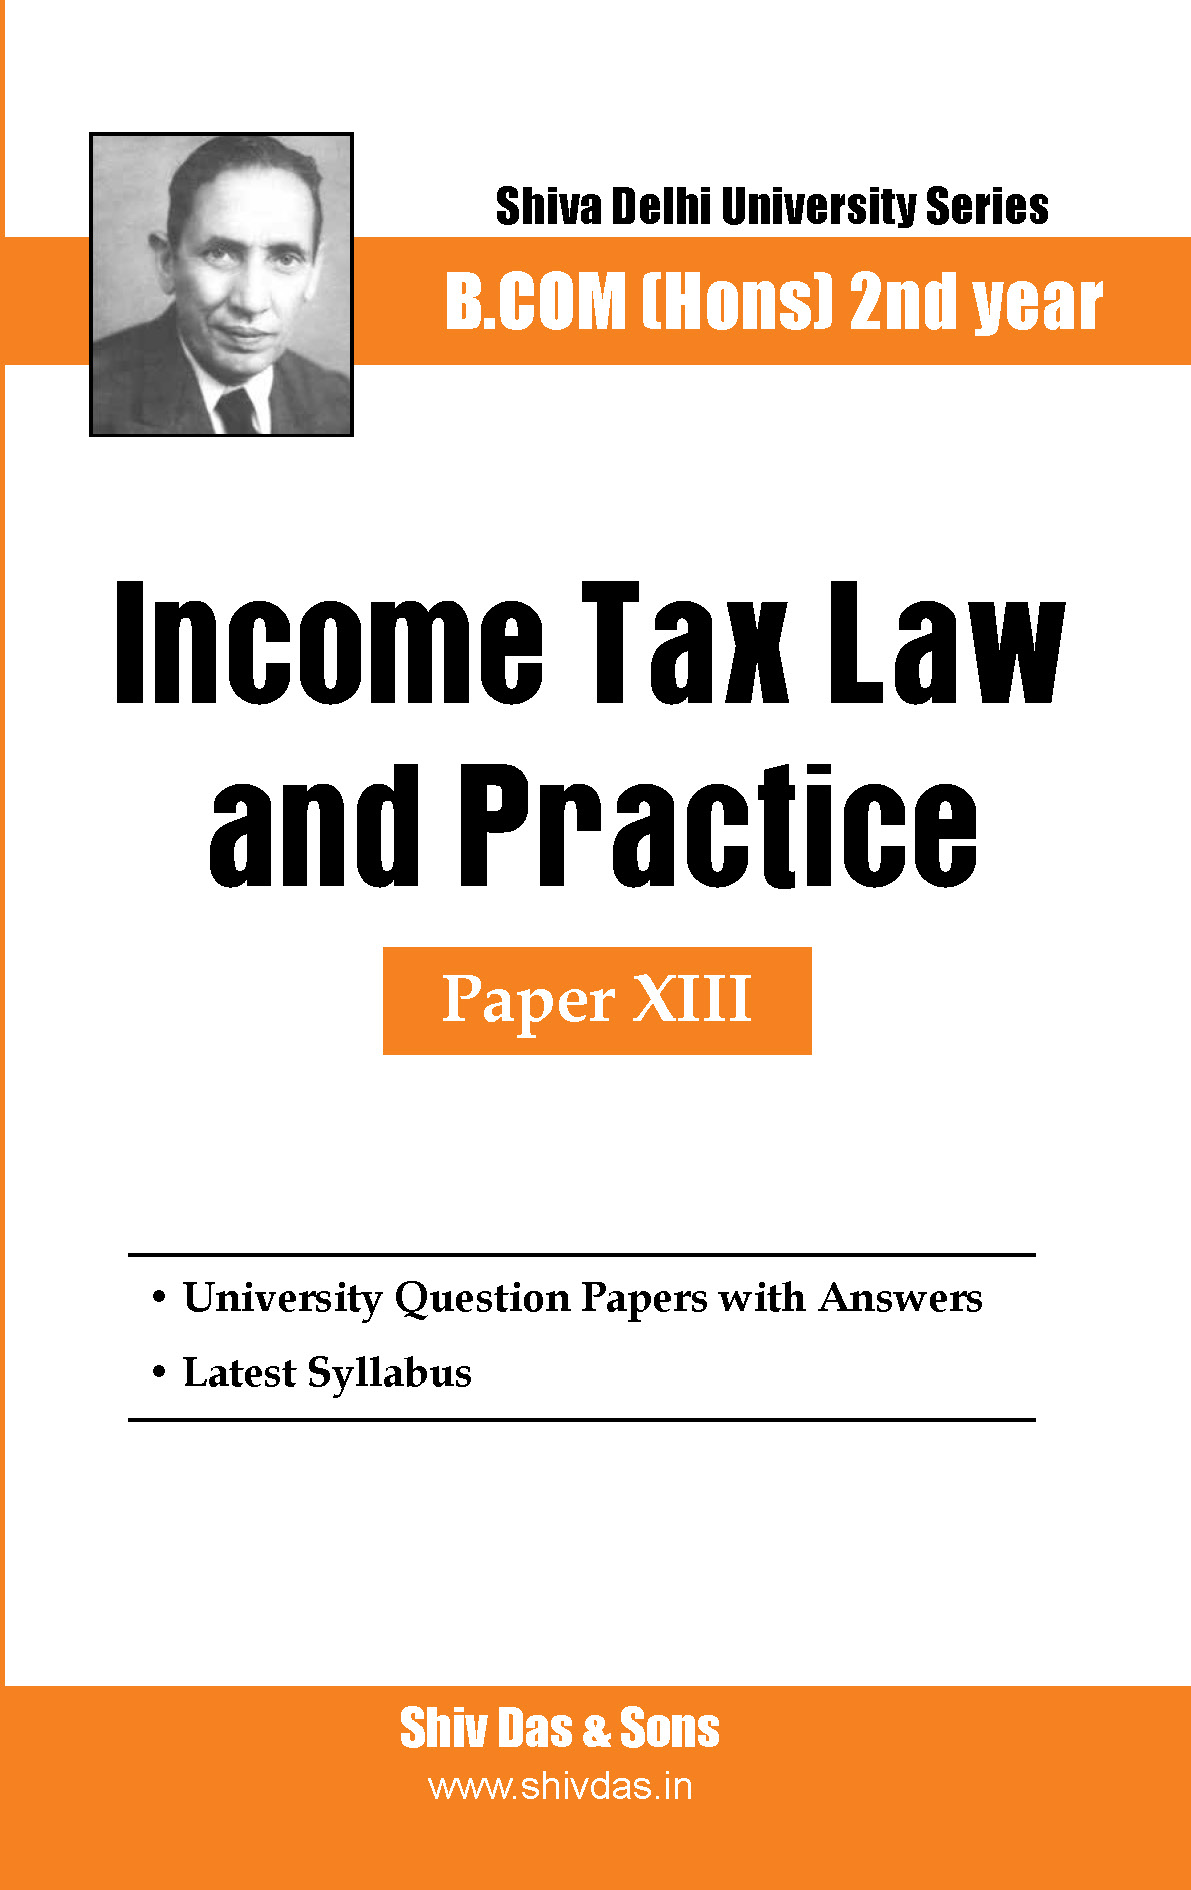 Income Tax Law & Practice for B.Com Hons SOL/External 2nd Year